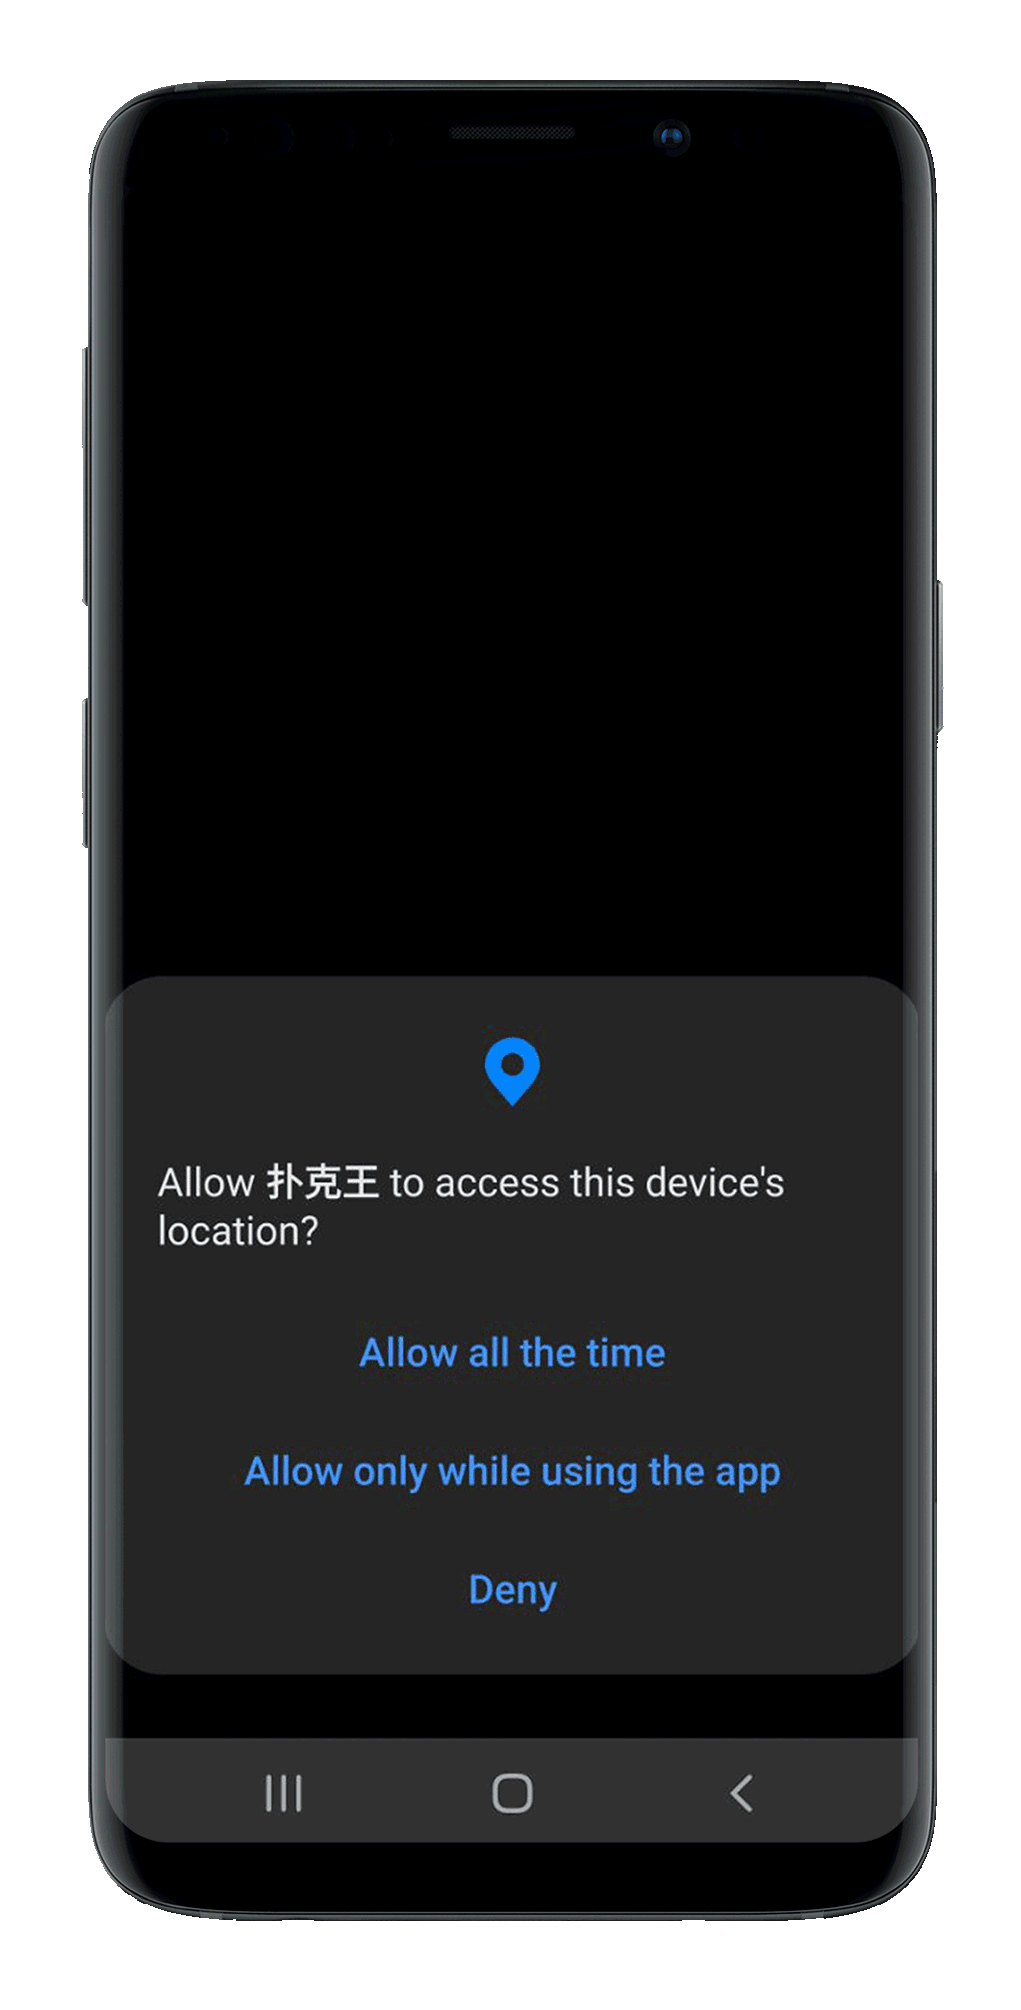 Allow the App to use phone's features: Access device's location